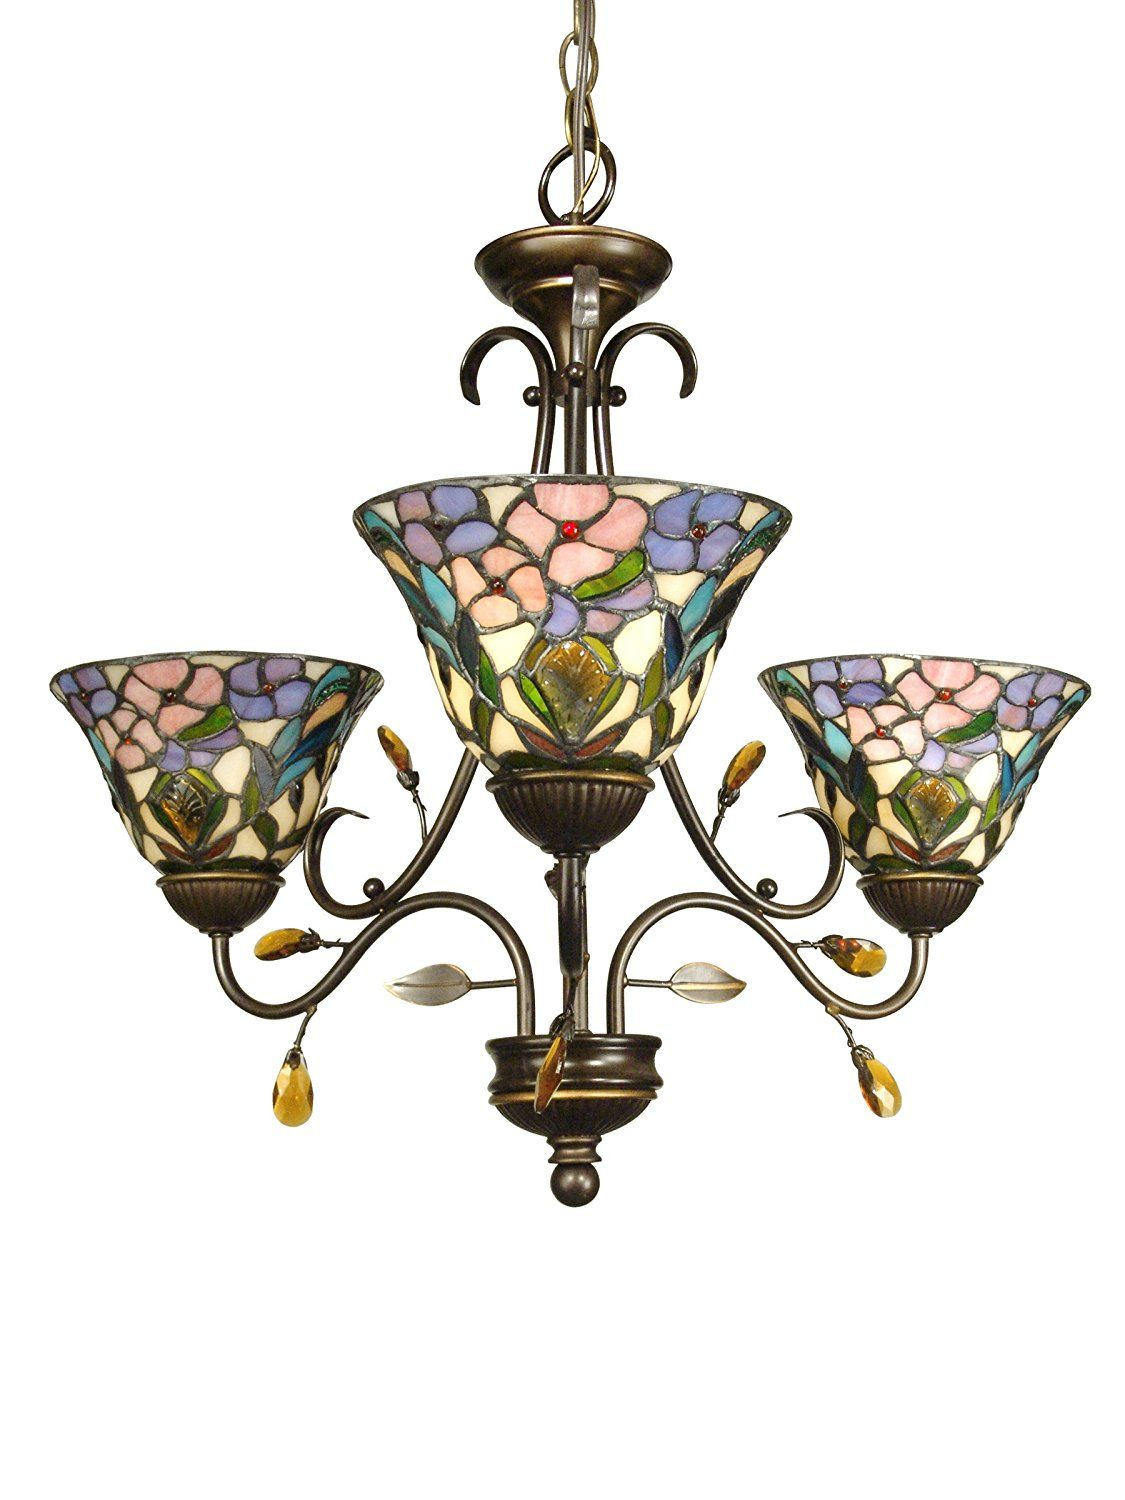 Dale Tiffany TH90214 3 Light Crystal Peony Chandelier, Antique Golden Sand  And Art Glass